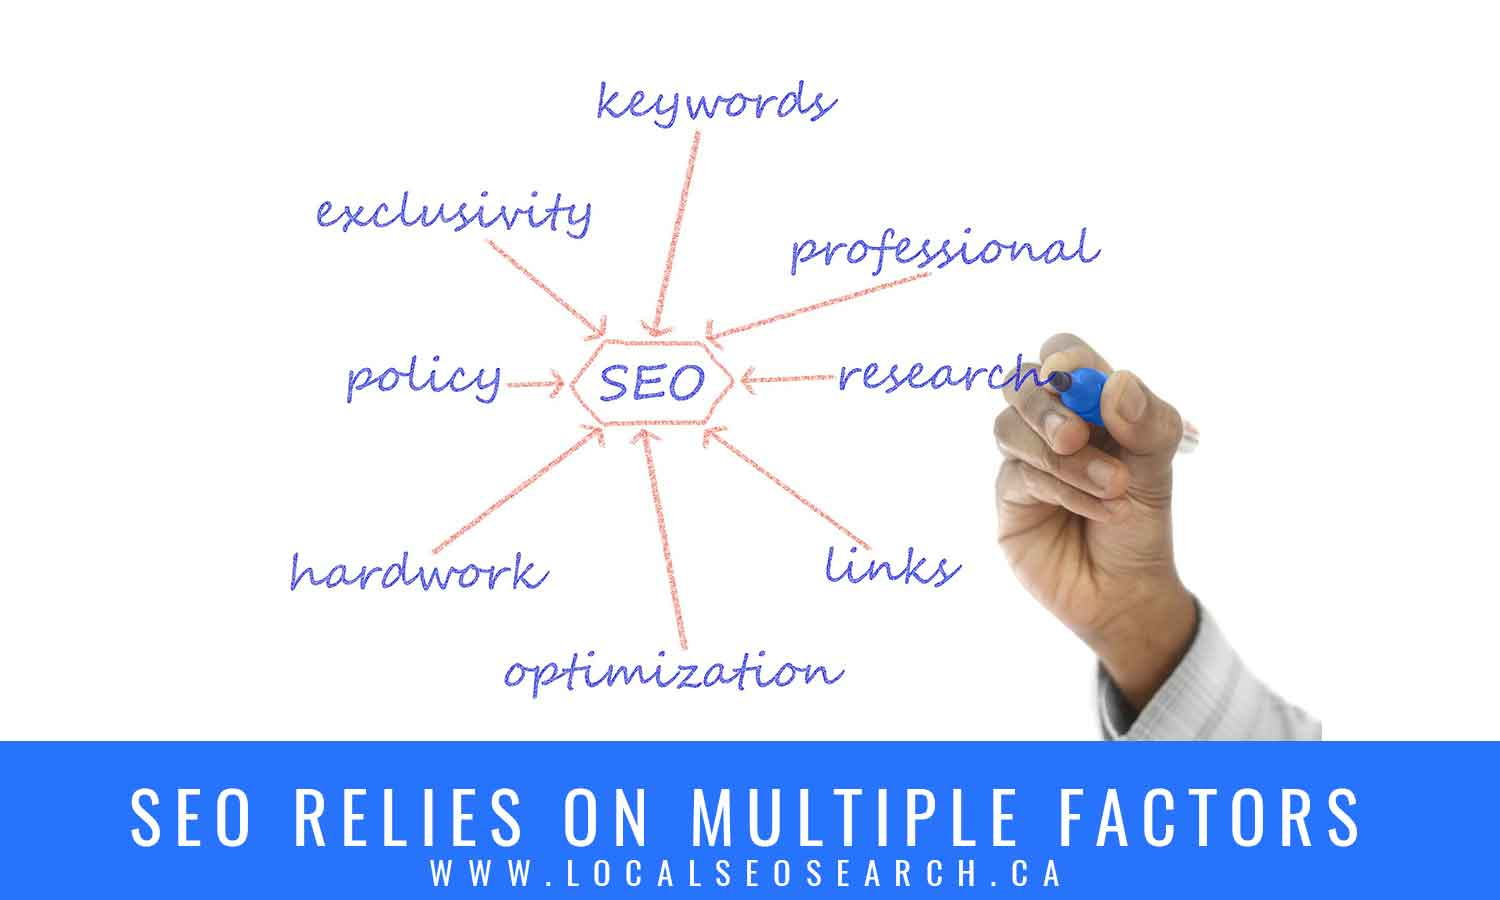 SEO relies on multiple factors